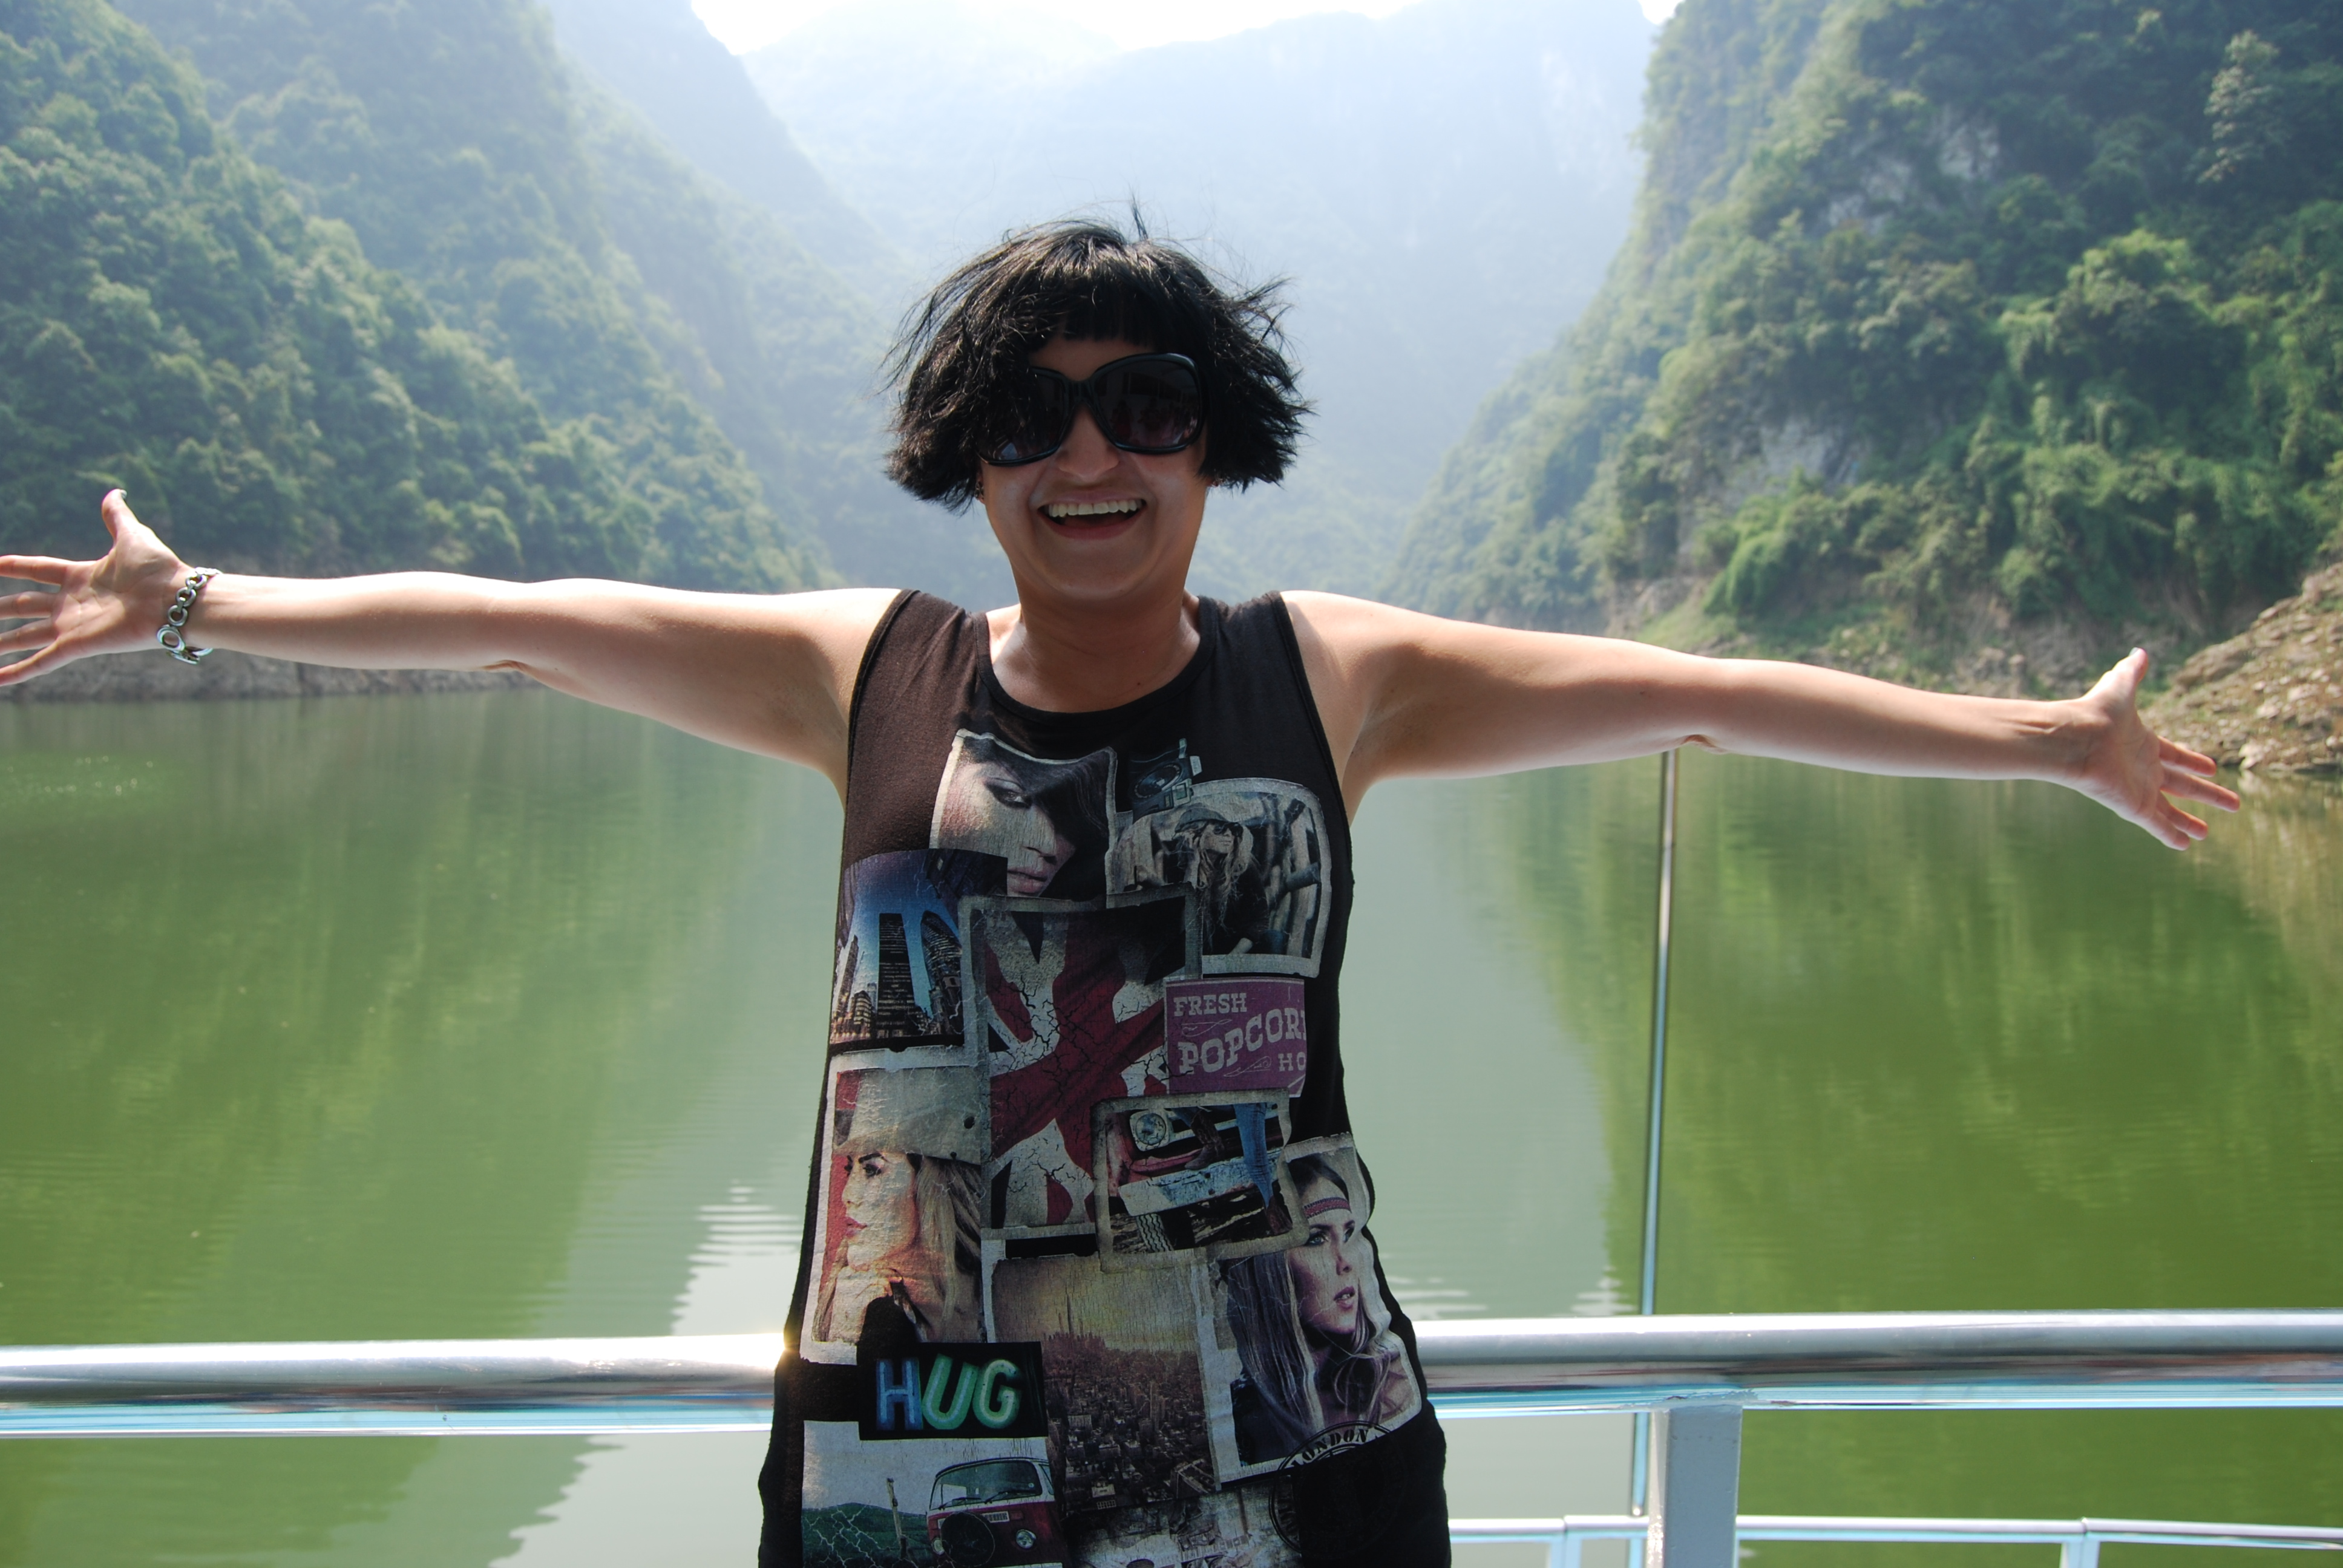 Floating down the Gorges of the magnificent Yangzte River